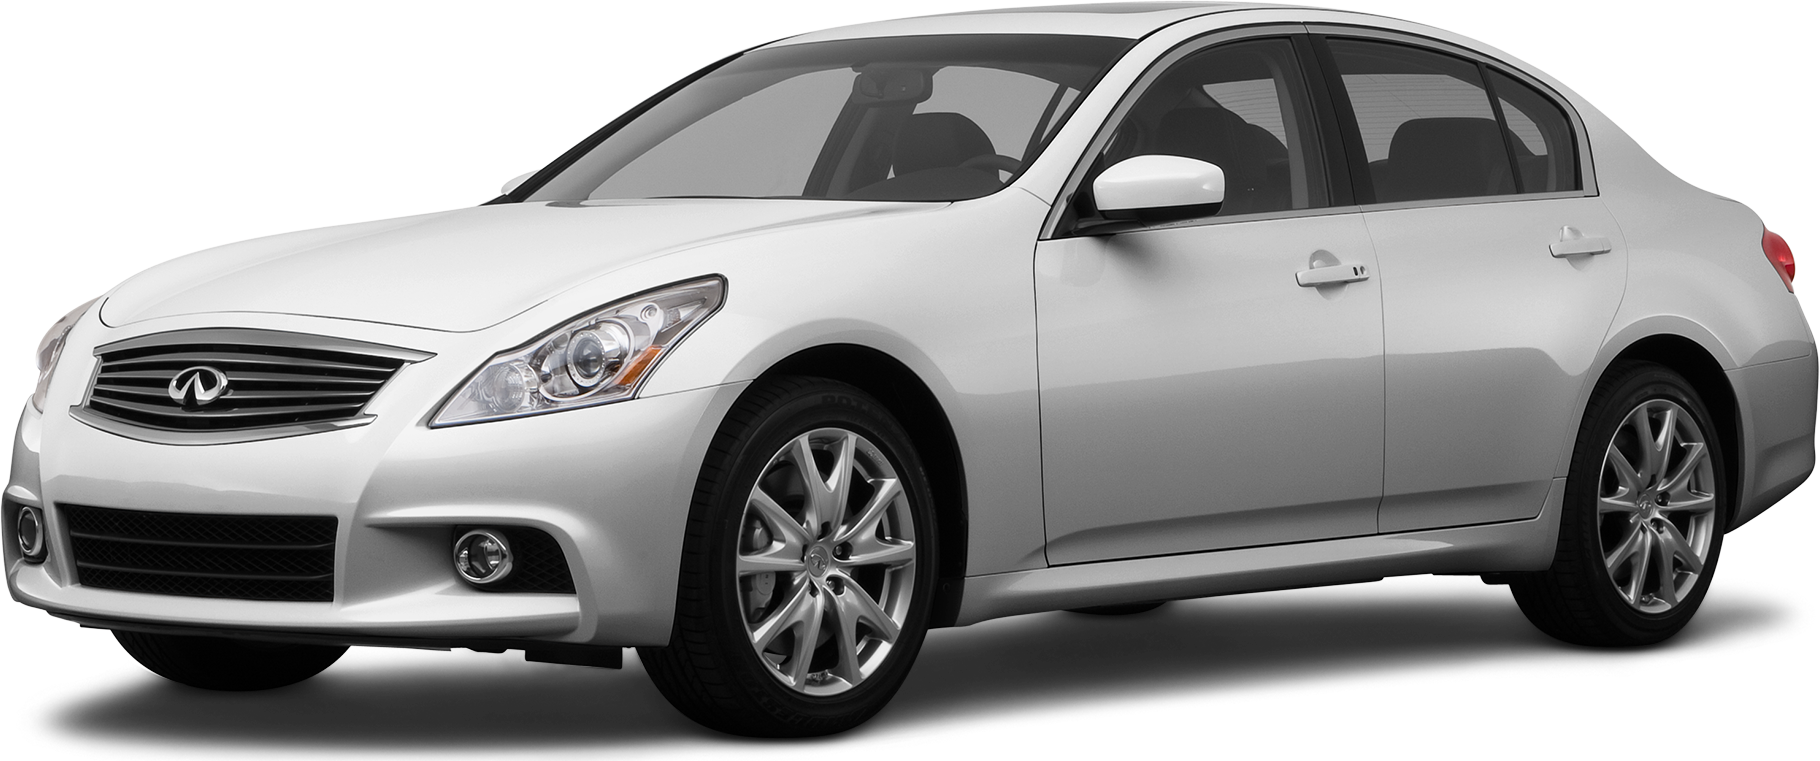 Used 2012 Infiniti G G37x Sedan 4d Prices Kelley Blue Book